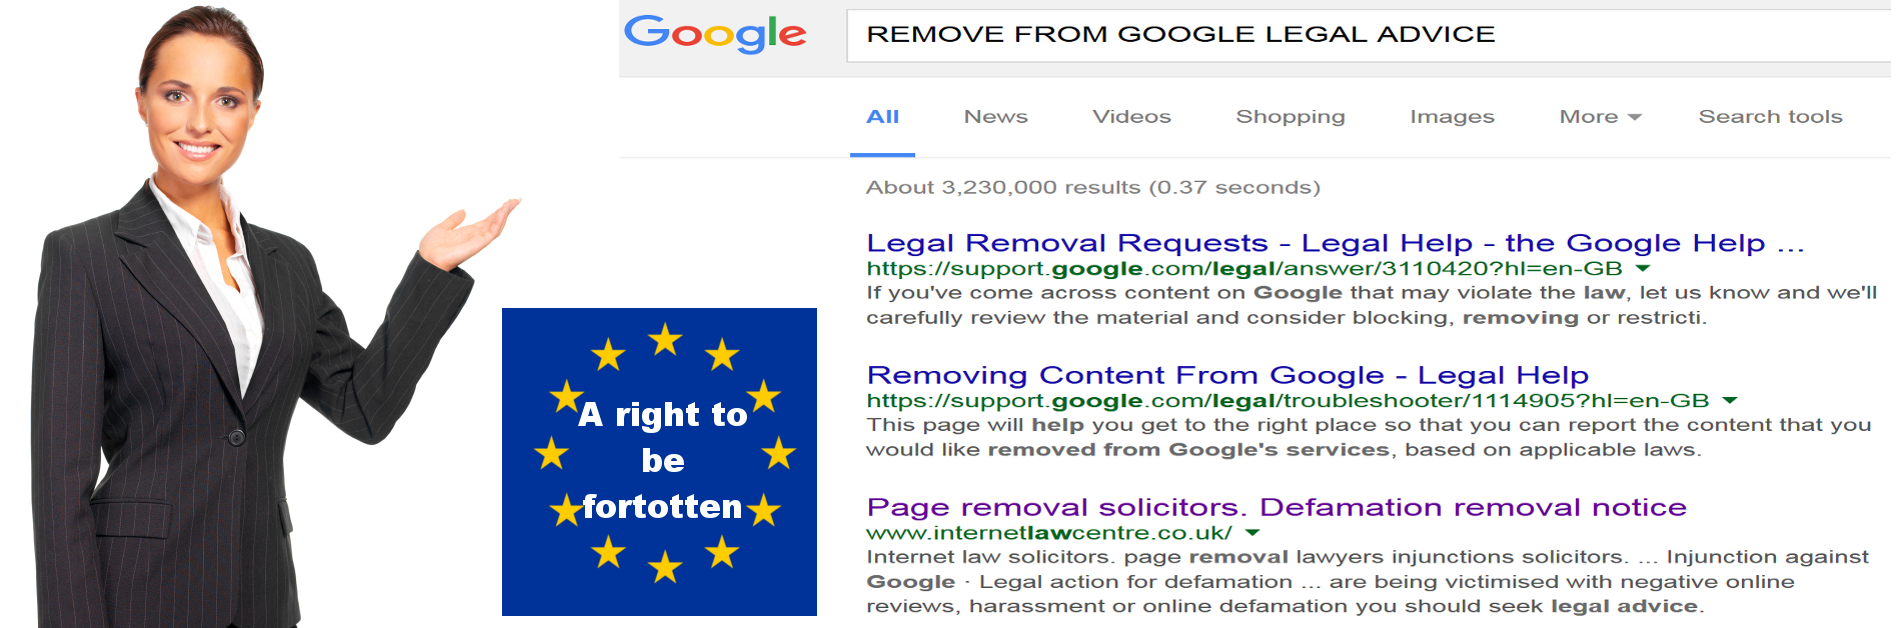 Remove from Google ICO right to be forgotten application solicitor